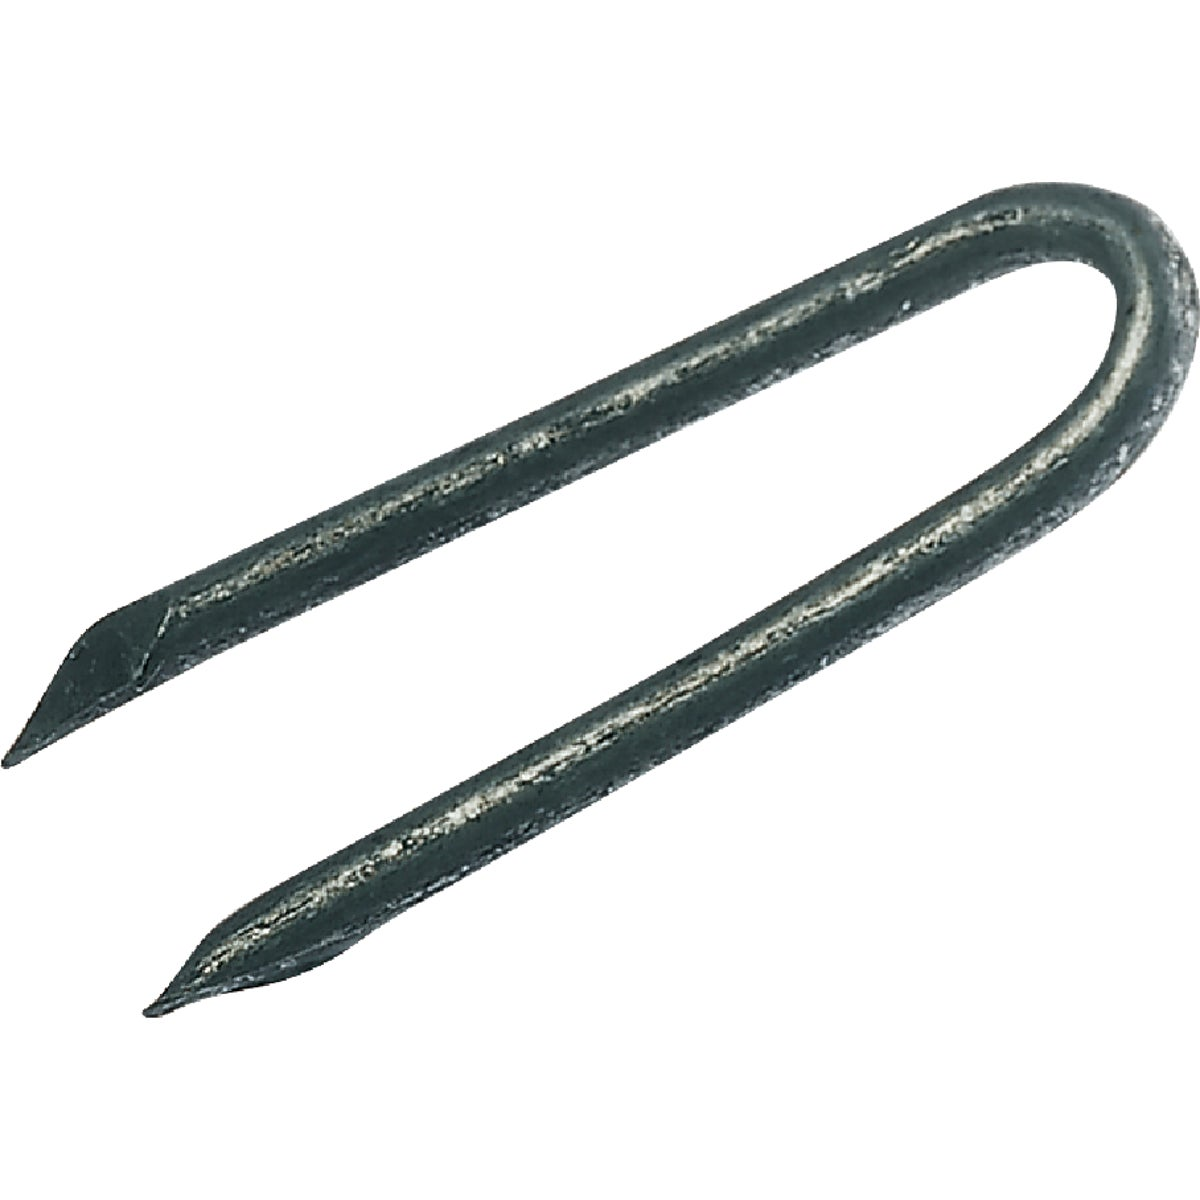 "1LB HDG 1"" STAPLE - 720731 by Primesource"